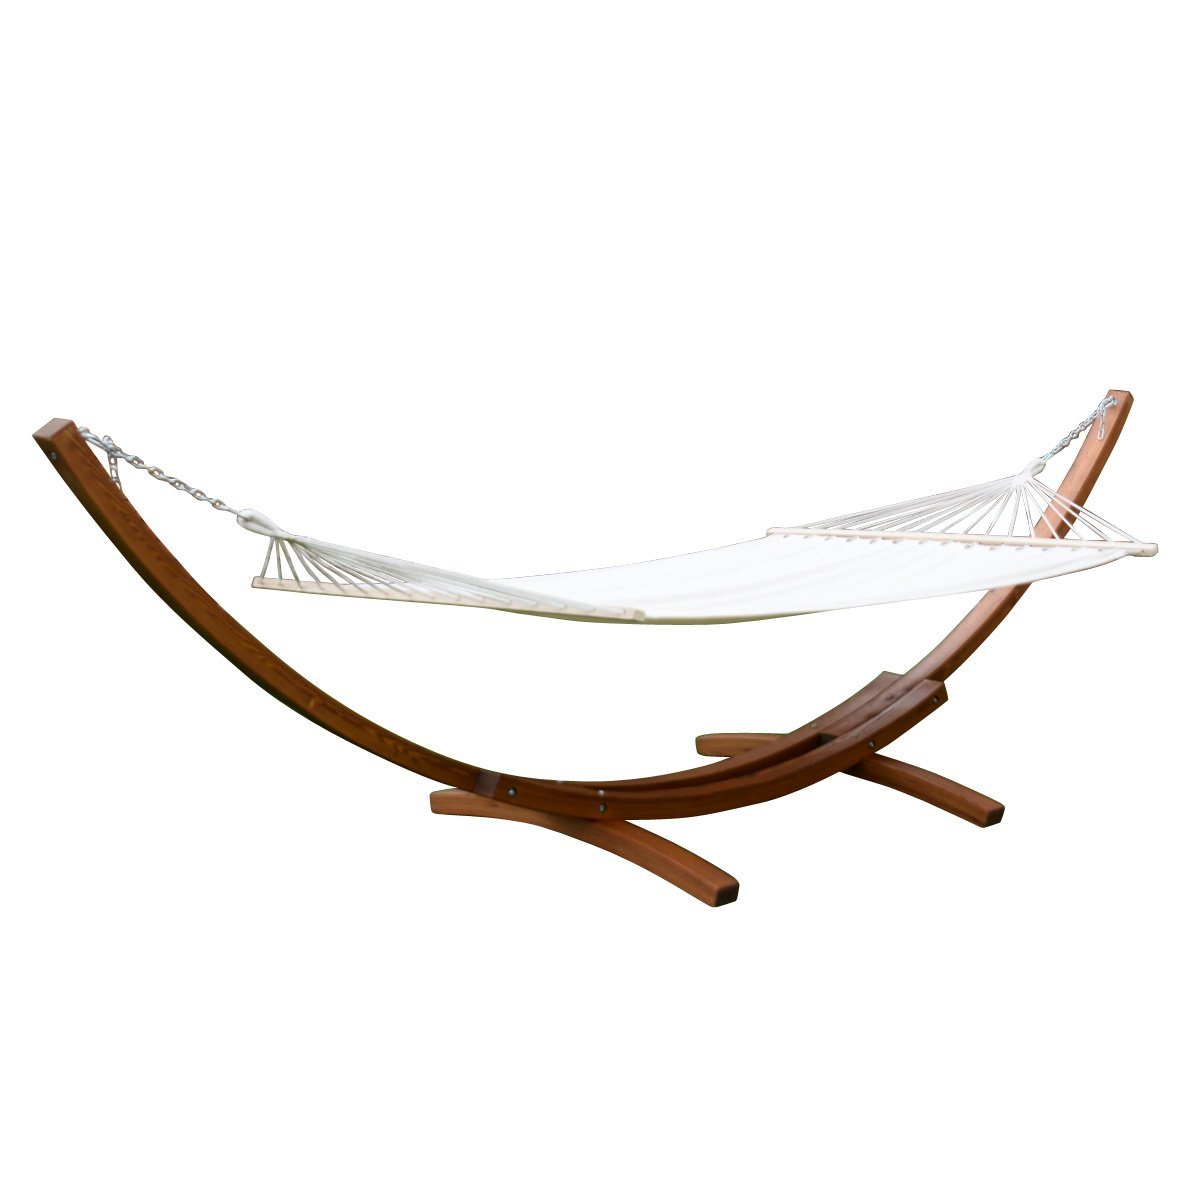 Giantex 161'' Wooden Curved Arc Hammock Stand W/ Hammocksize Outdoor Patio Garden Swing (161.4''X47.2''X48.0'') by Giantex